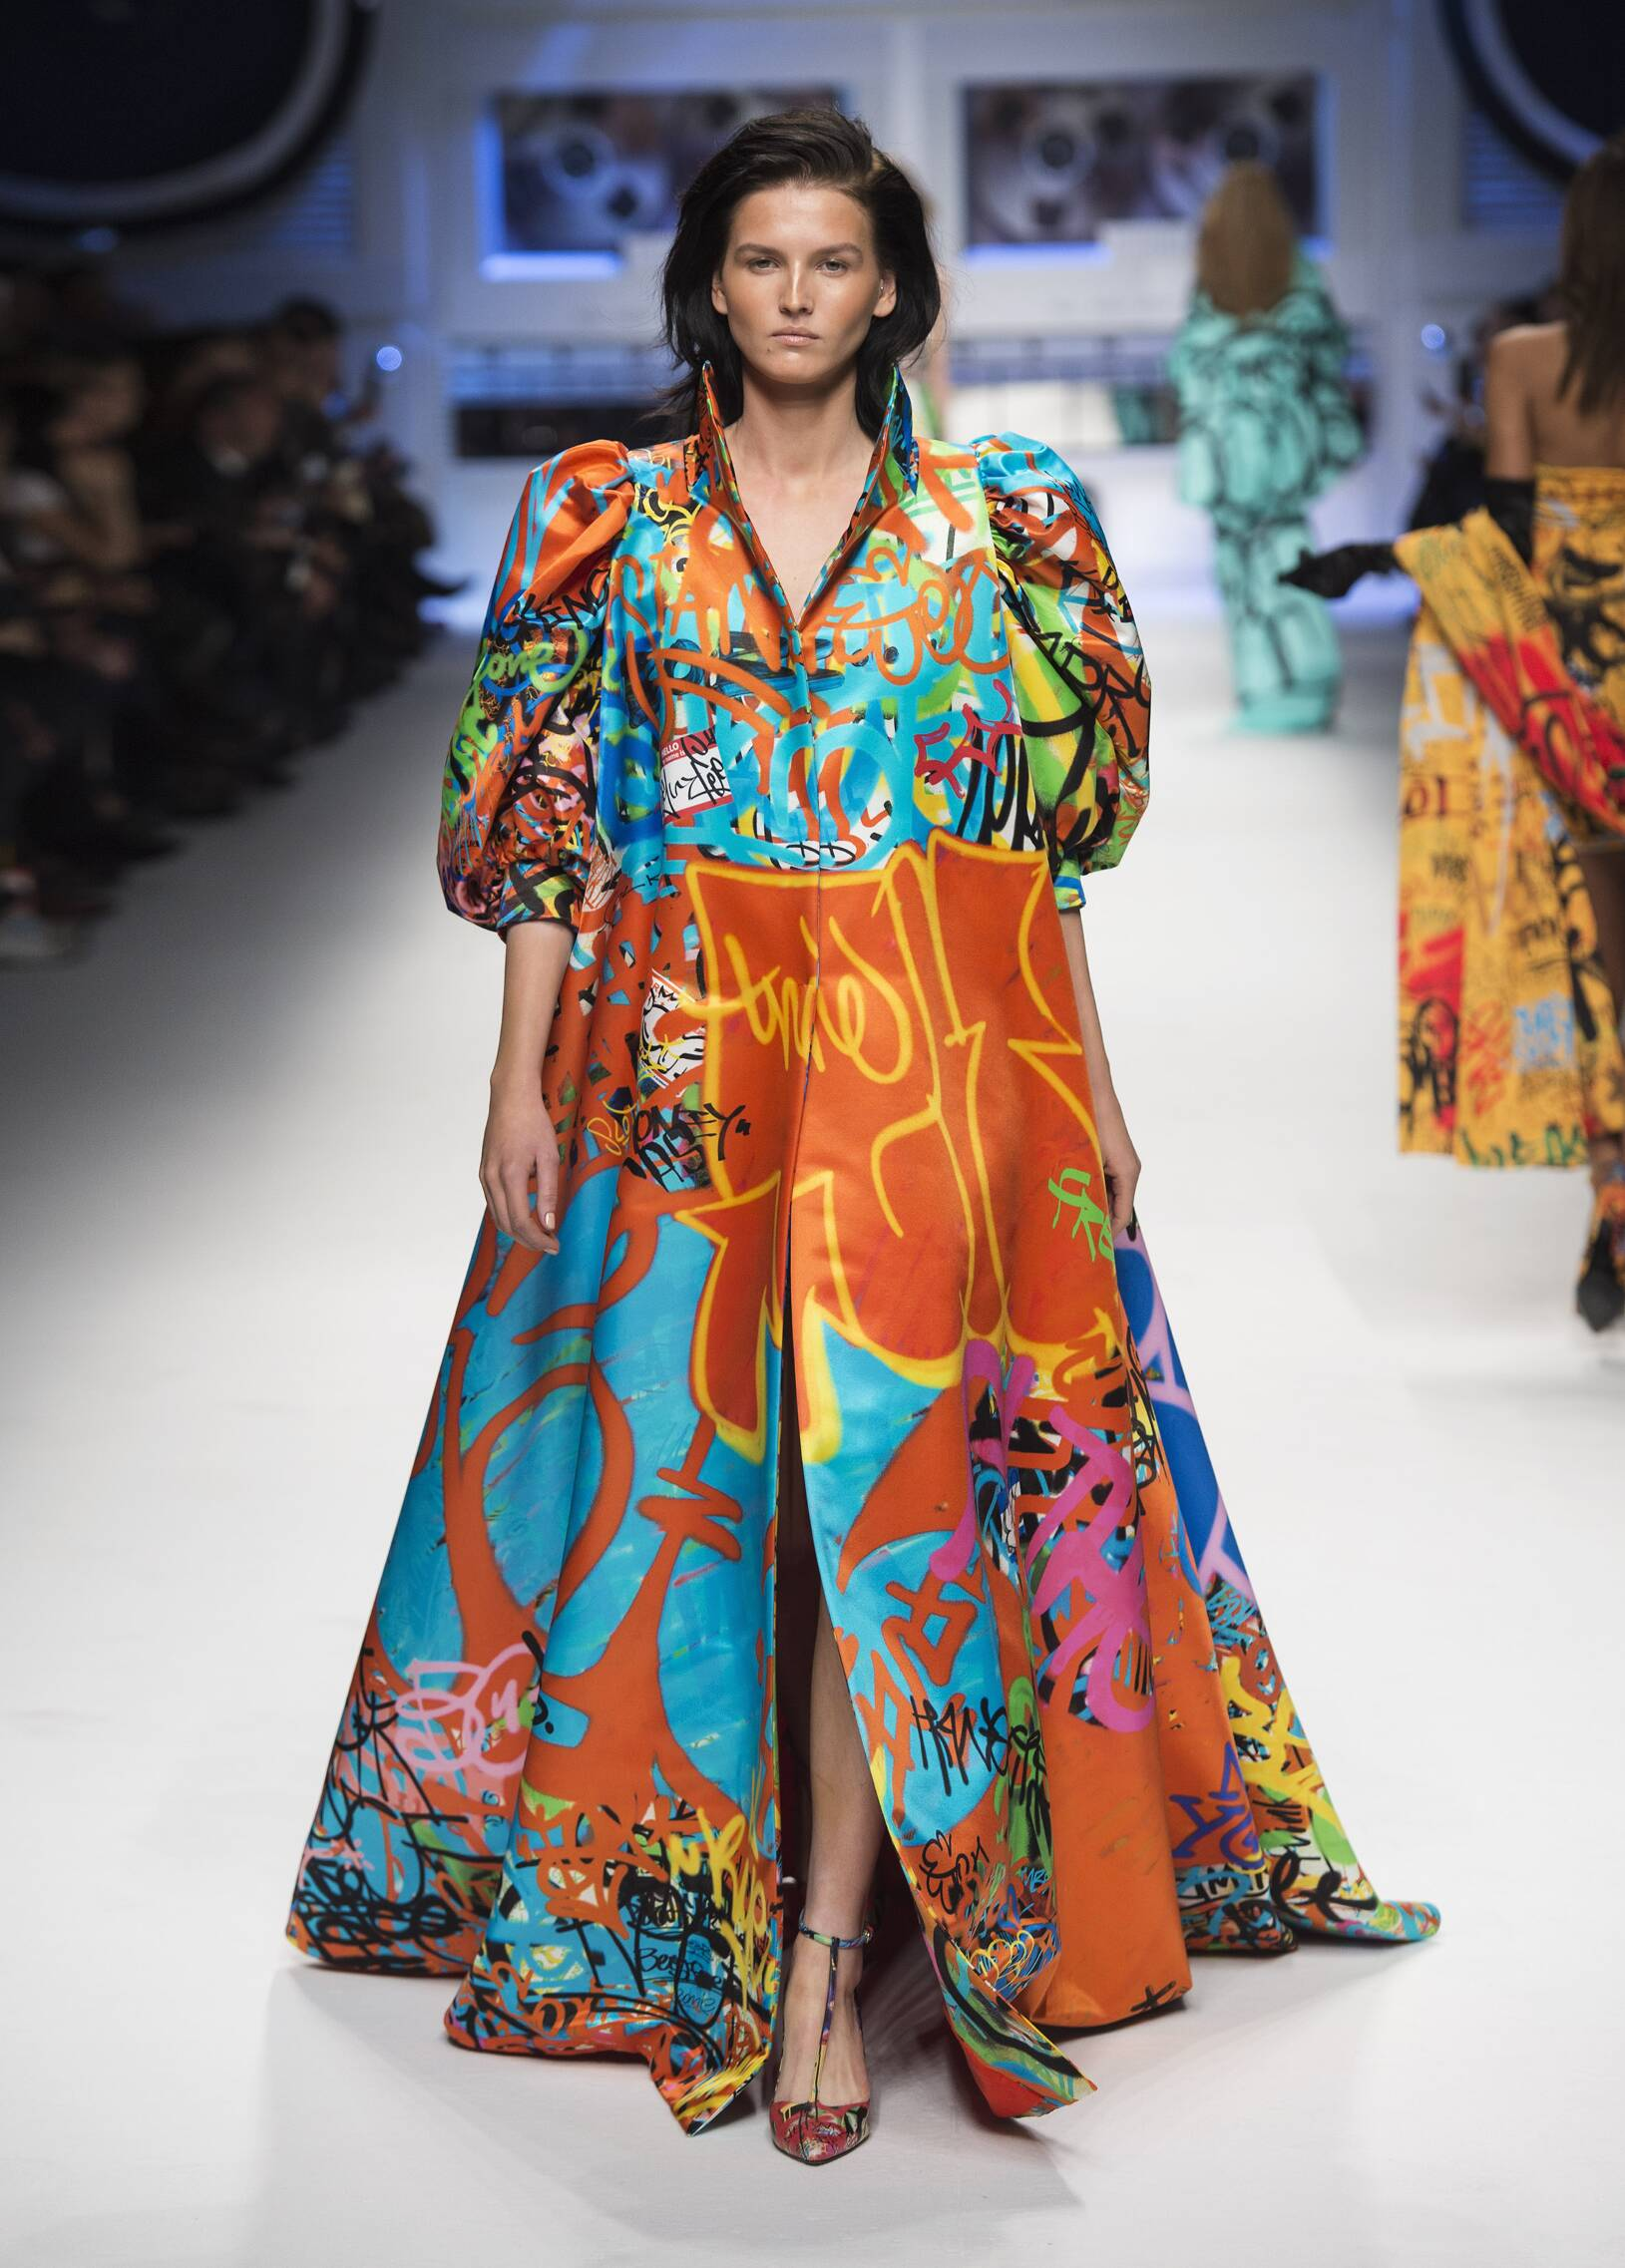 Moschino Collection Trends Fall 2015 Catwalk